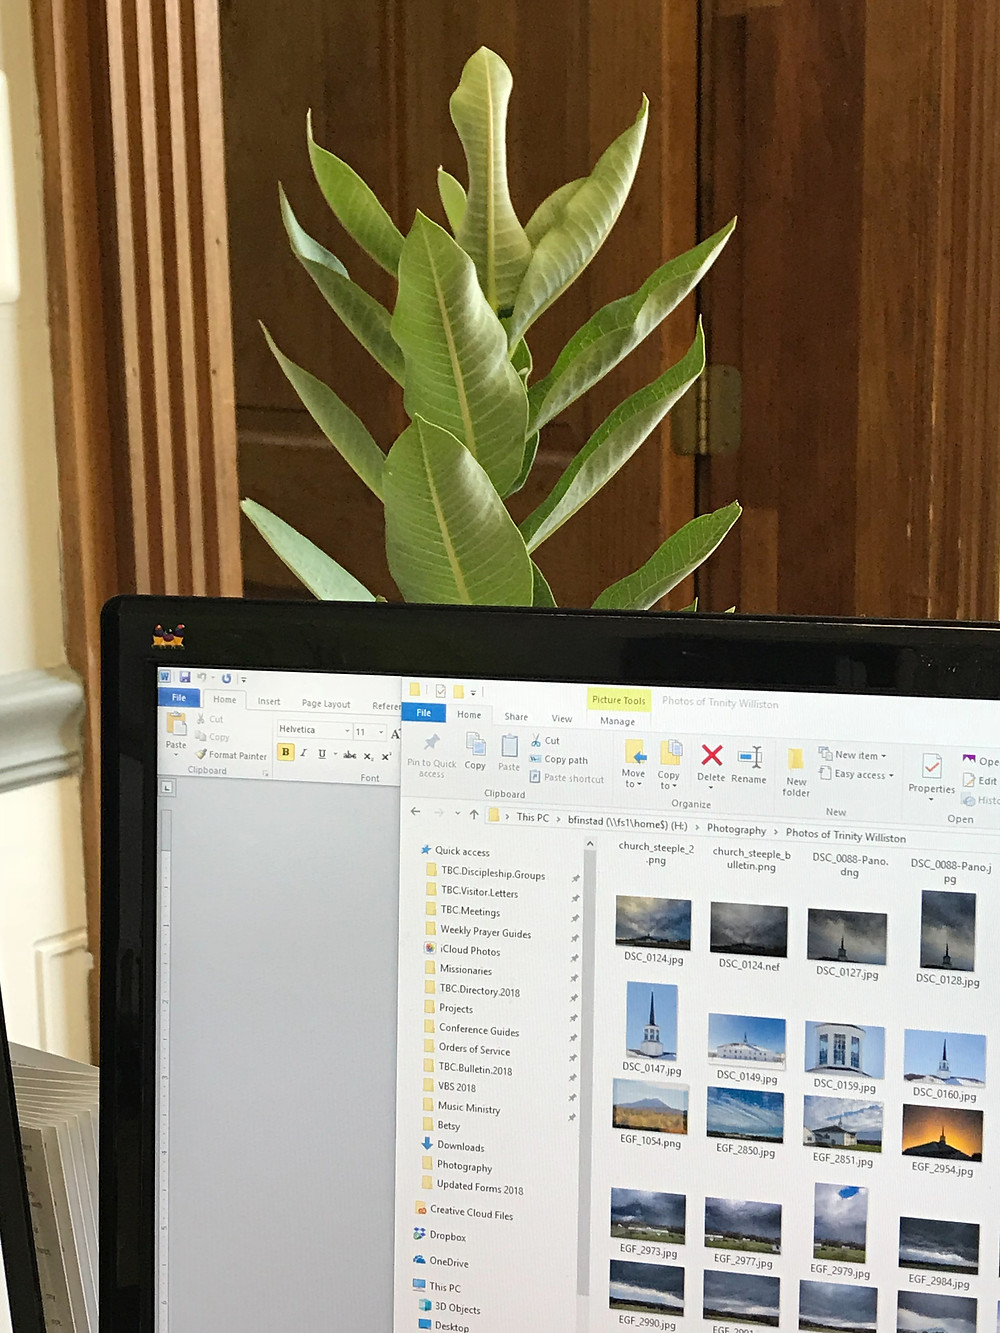 Large plant in a vase on my desk :)